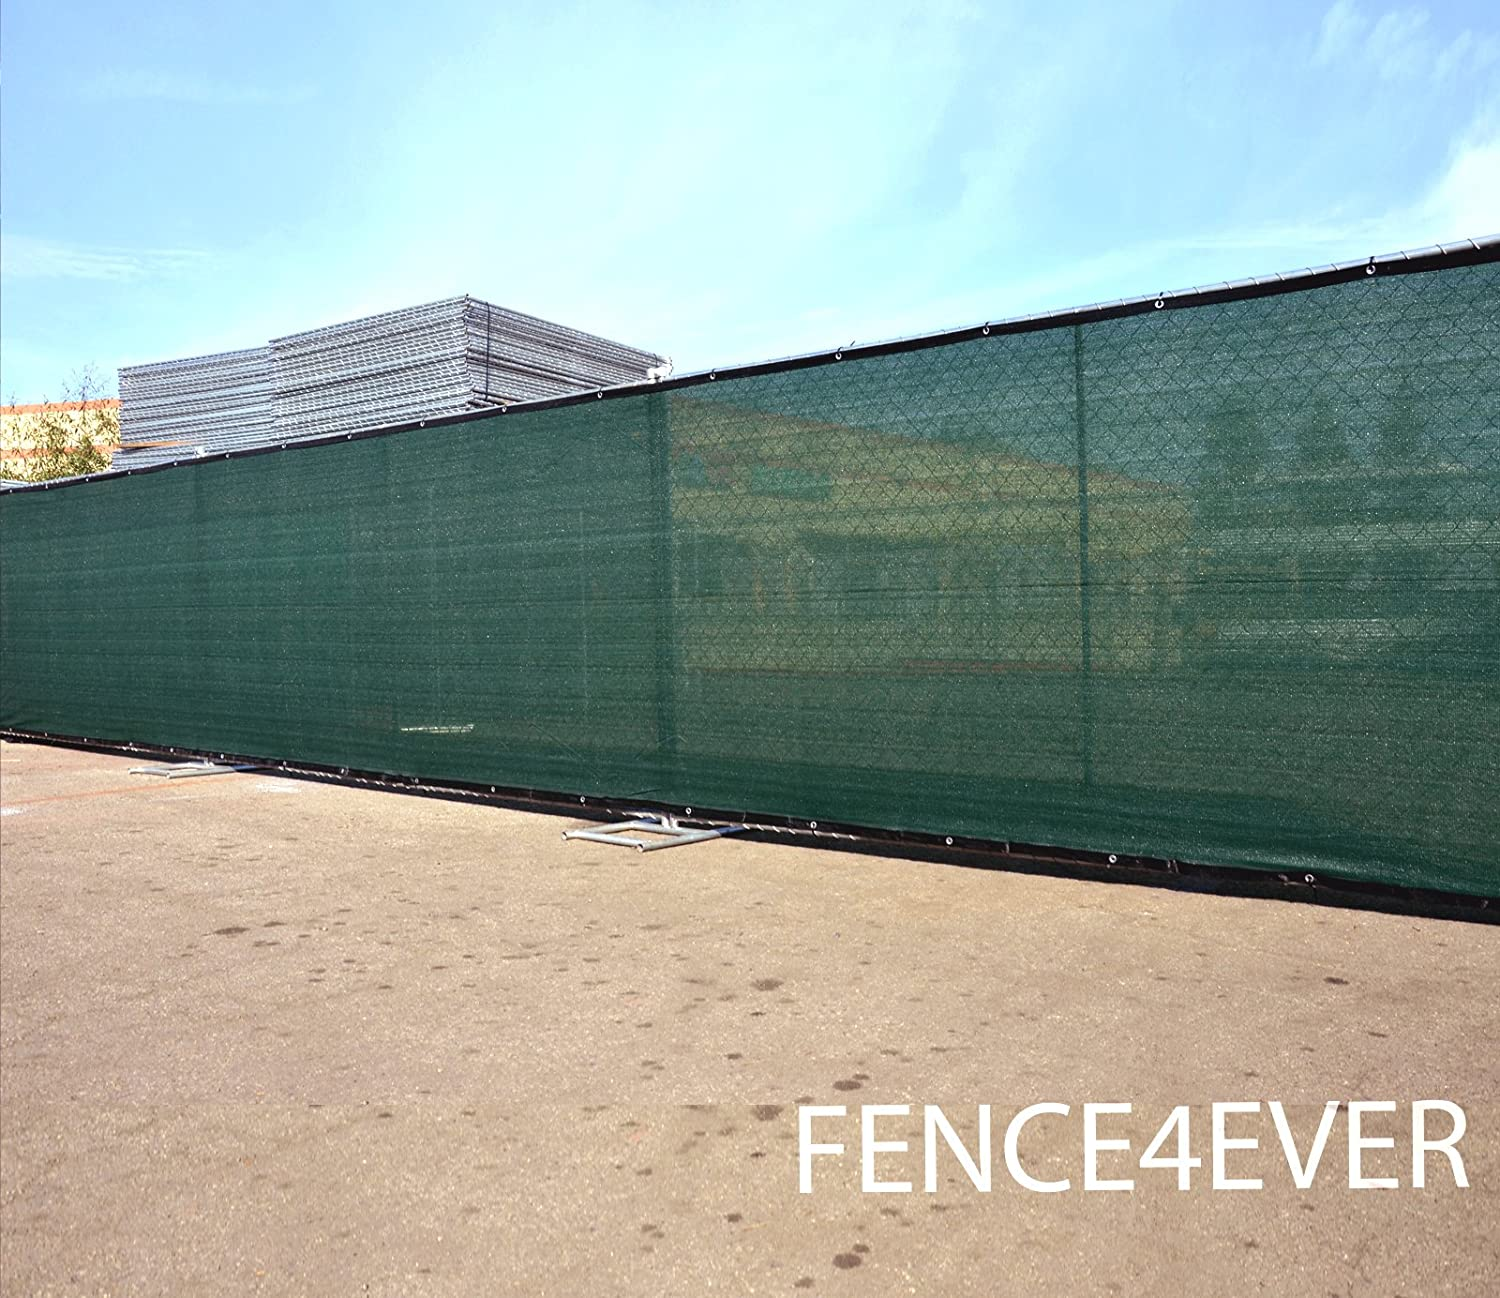 Amazon.com : Fence4ever 8u0027x50u0027 8ft Tall 3rd Gen Olive Green Fence Privacy  Screen Windscreen Shade Cover Mesh Fabric (Aluminum Grommets) Home, Court,  ...